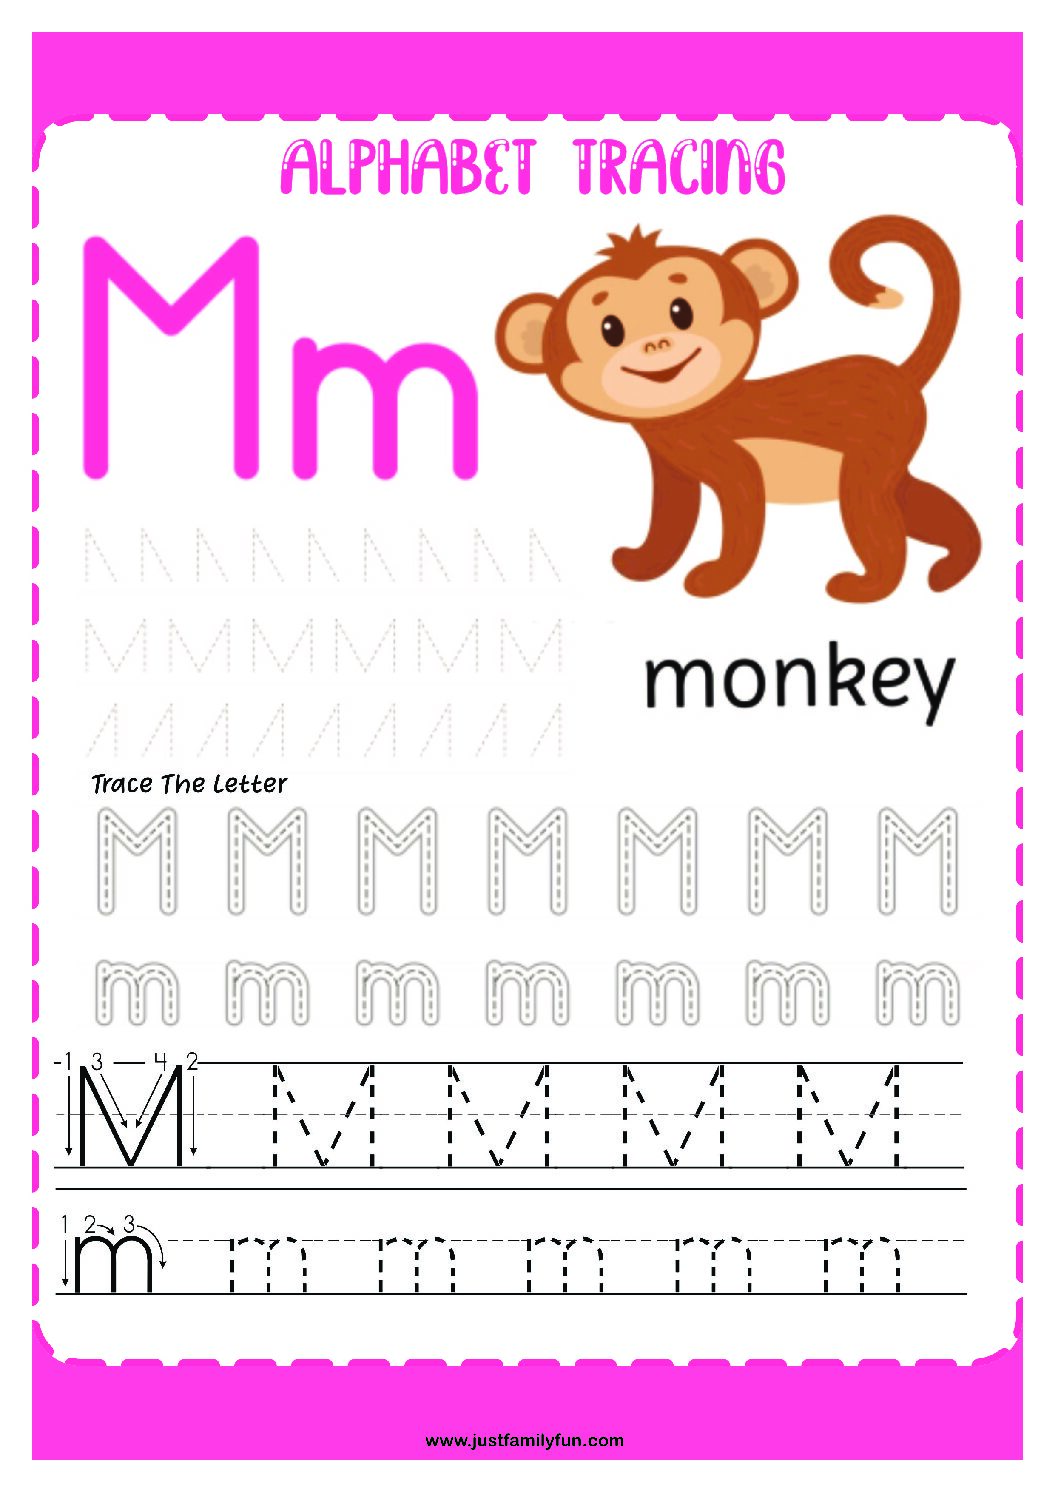 Alphabets_13-pdf Free Printable Trace The Alphabet Worksheets for Kids.